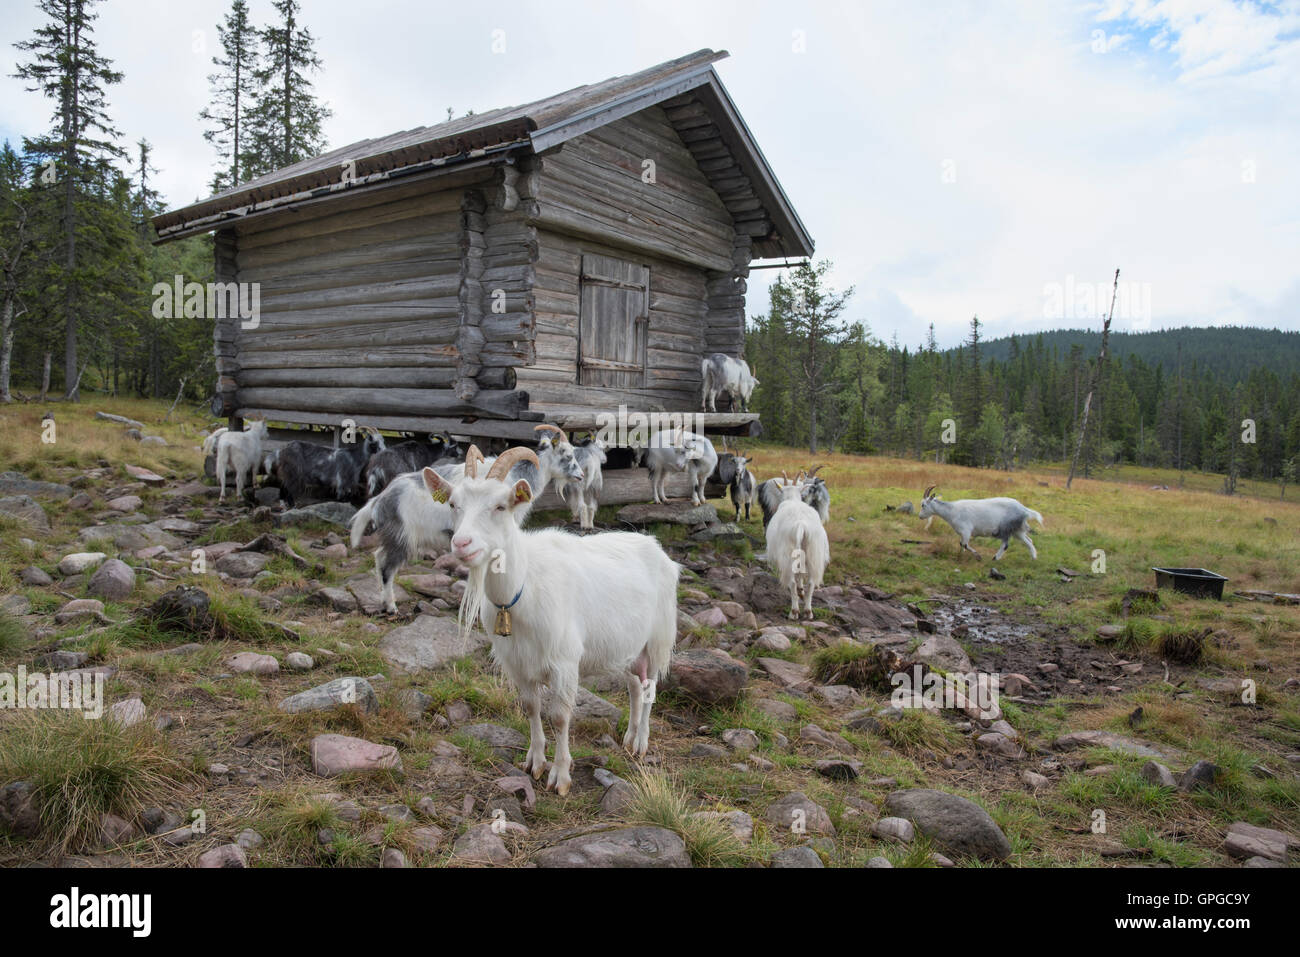 Goats grazing at a mountain farm Vardsätern in Dalarna, Sweden - Stock Image